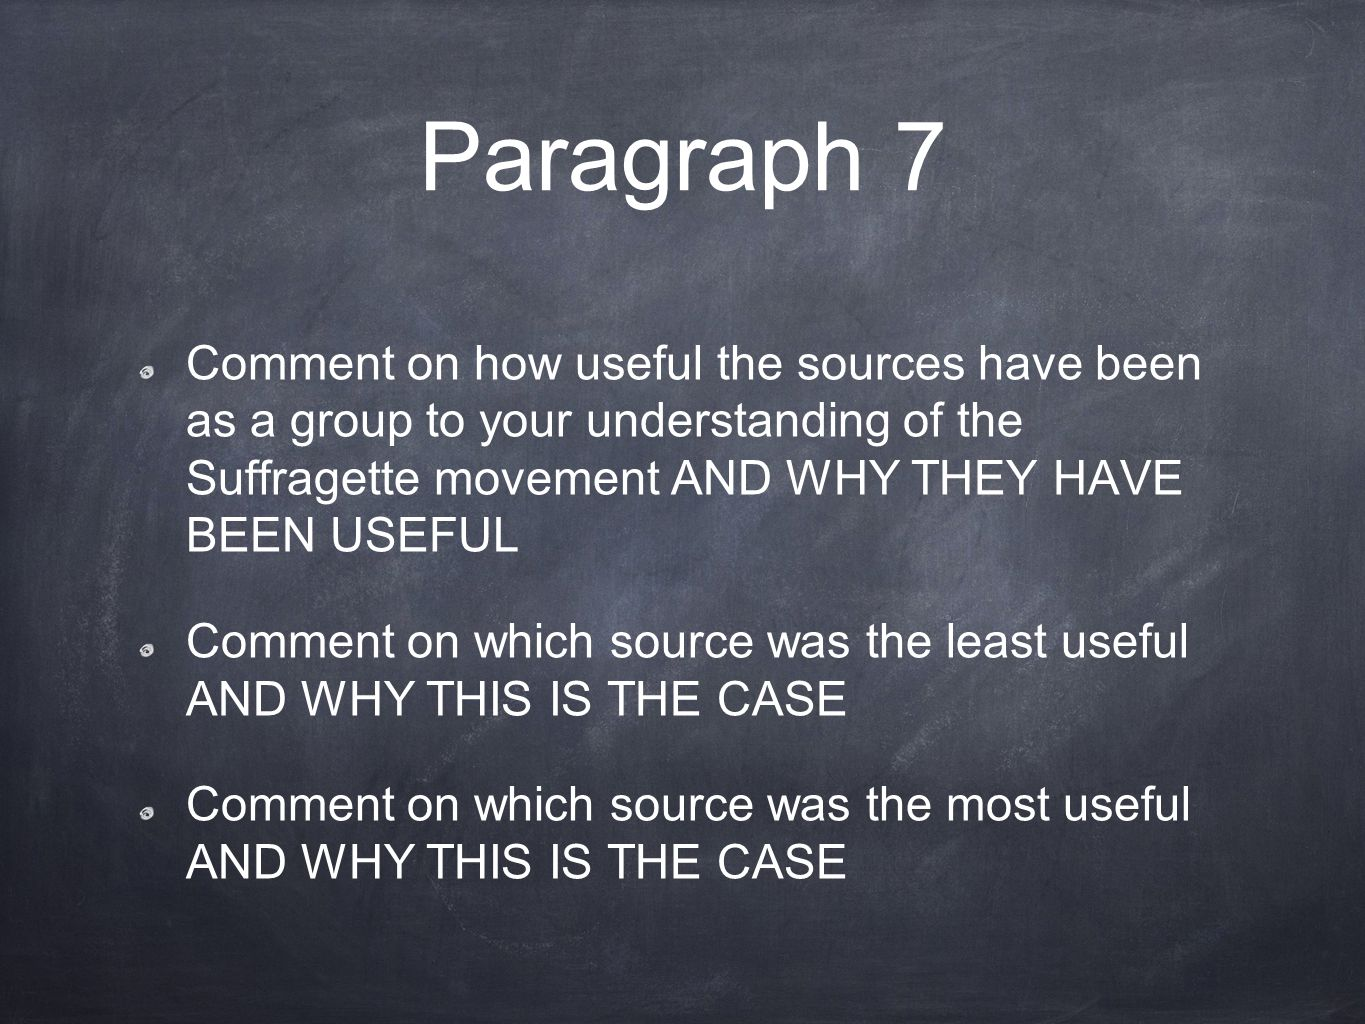 Paragraph 7 Comment on how useful the sources have been as a group to your understanding of the Suffragette movement AND WHY THEY HAVE BEEN USEFUL Comment on which source was the least useful AND WHY THIS IS THE CASE Comment on which source was the most useful AND WHY THIS IS THE CASE